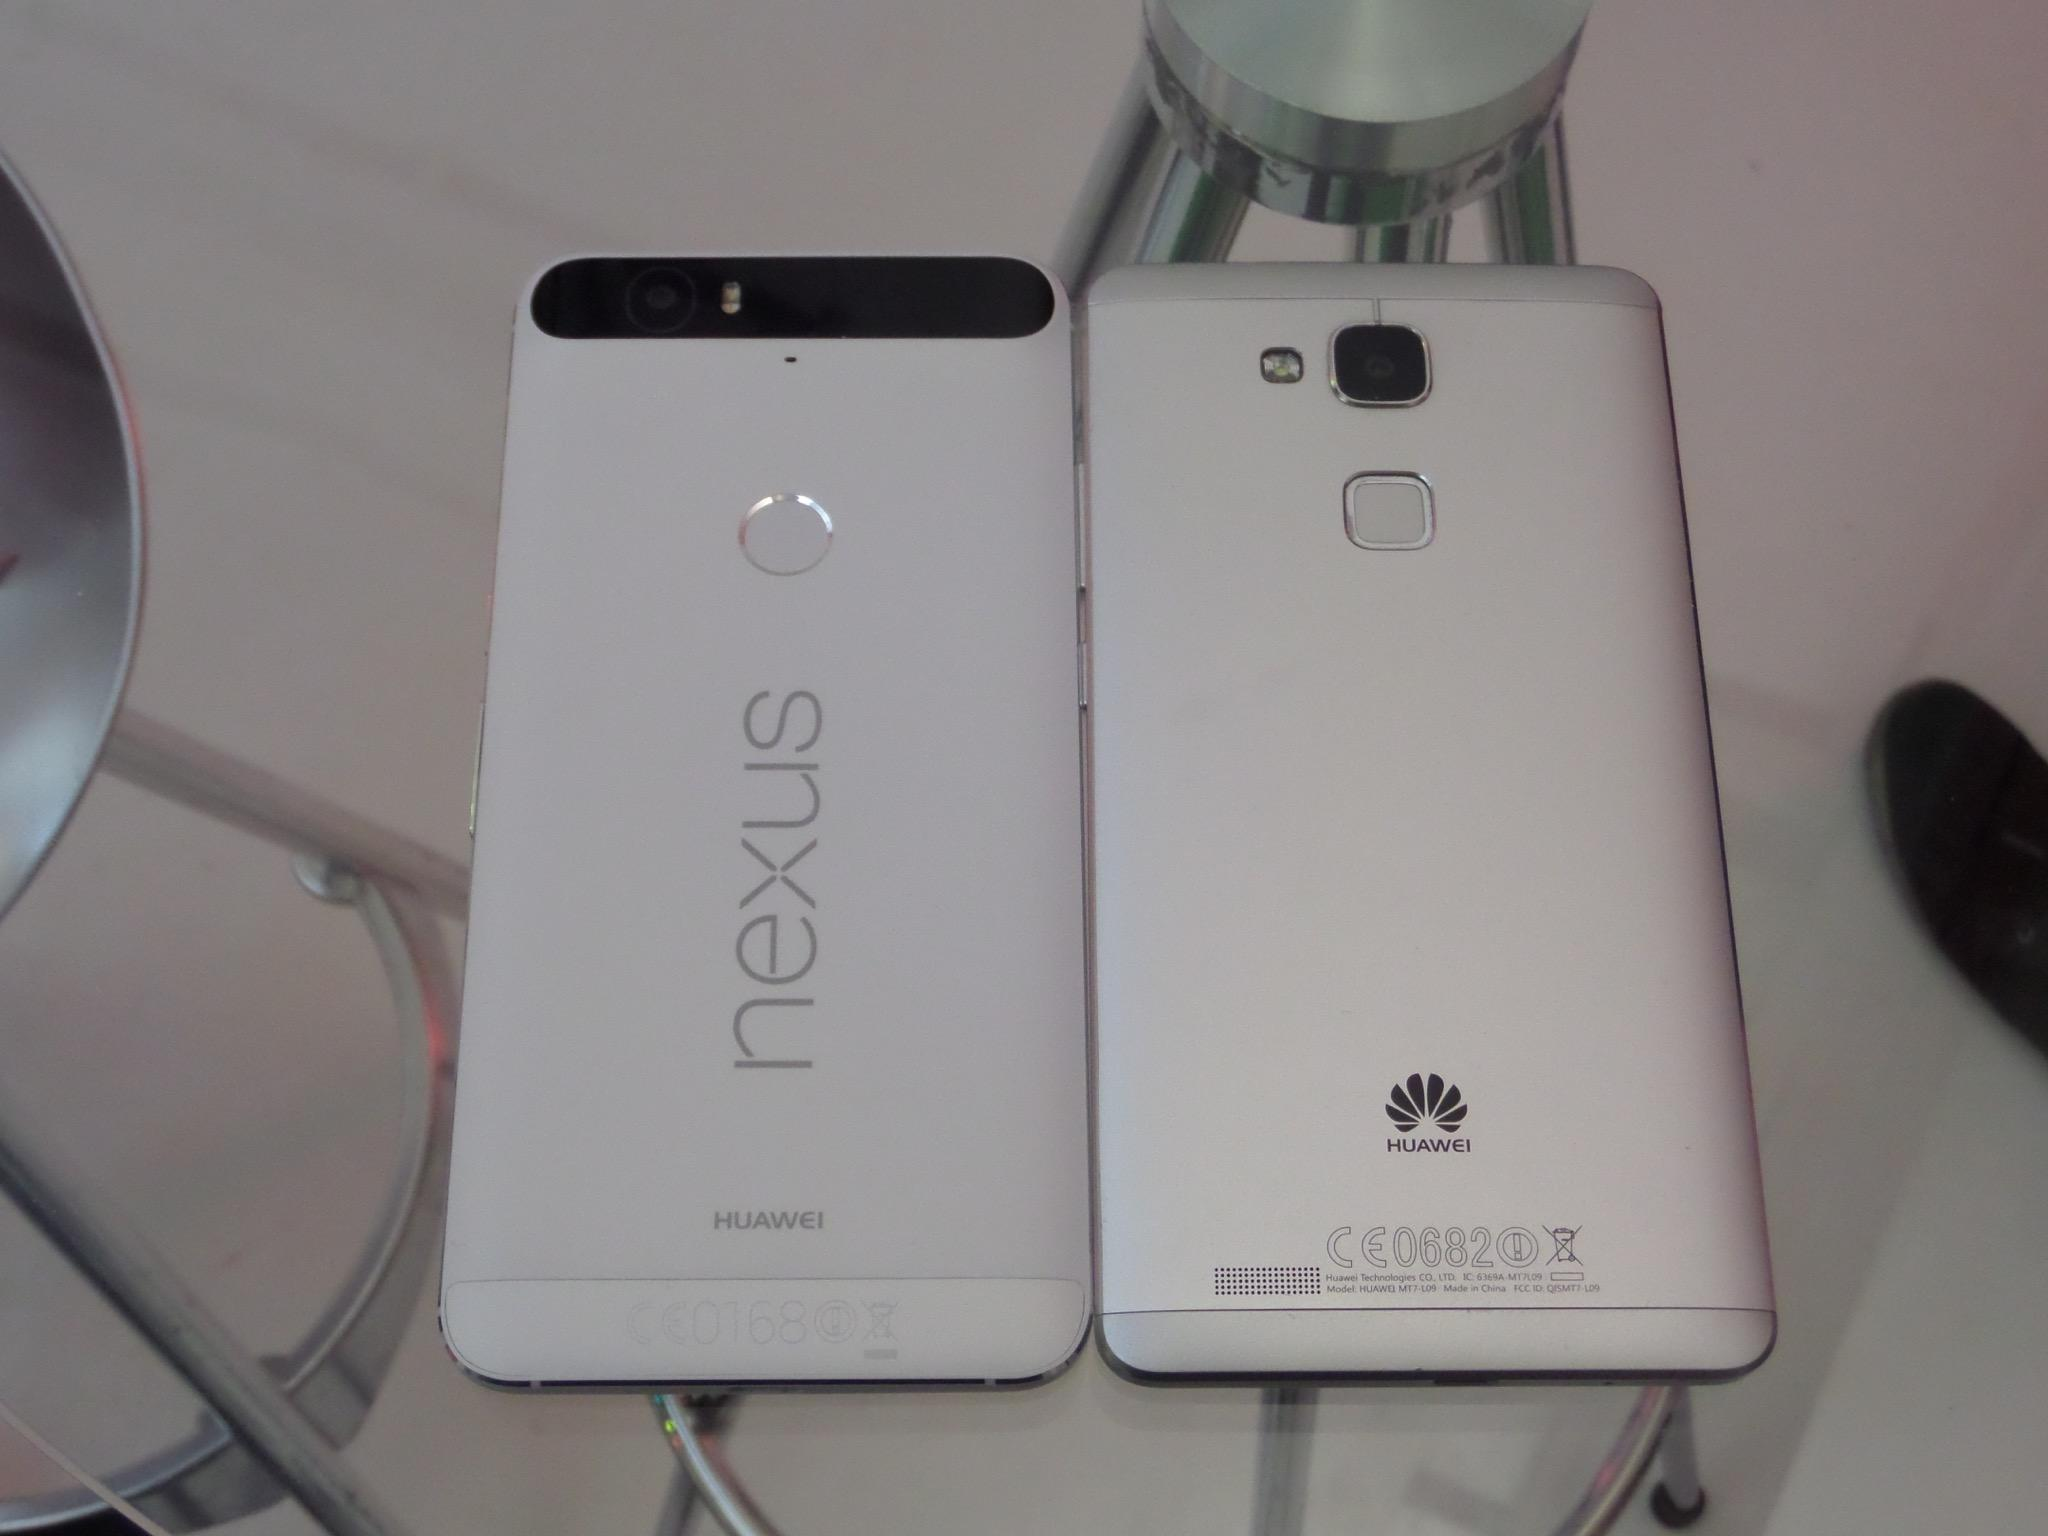 Huawei Mate 7 vs Nexus 6P